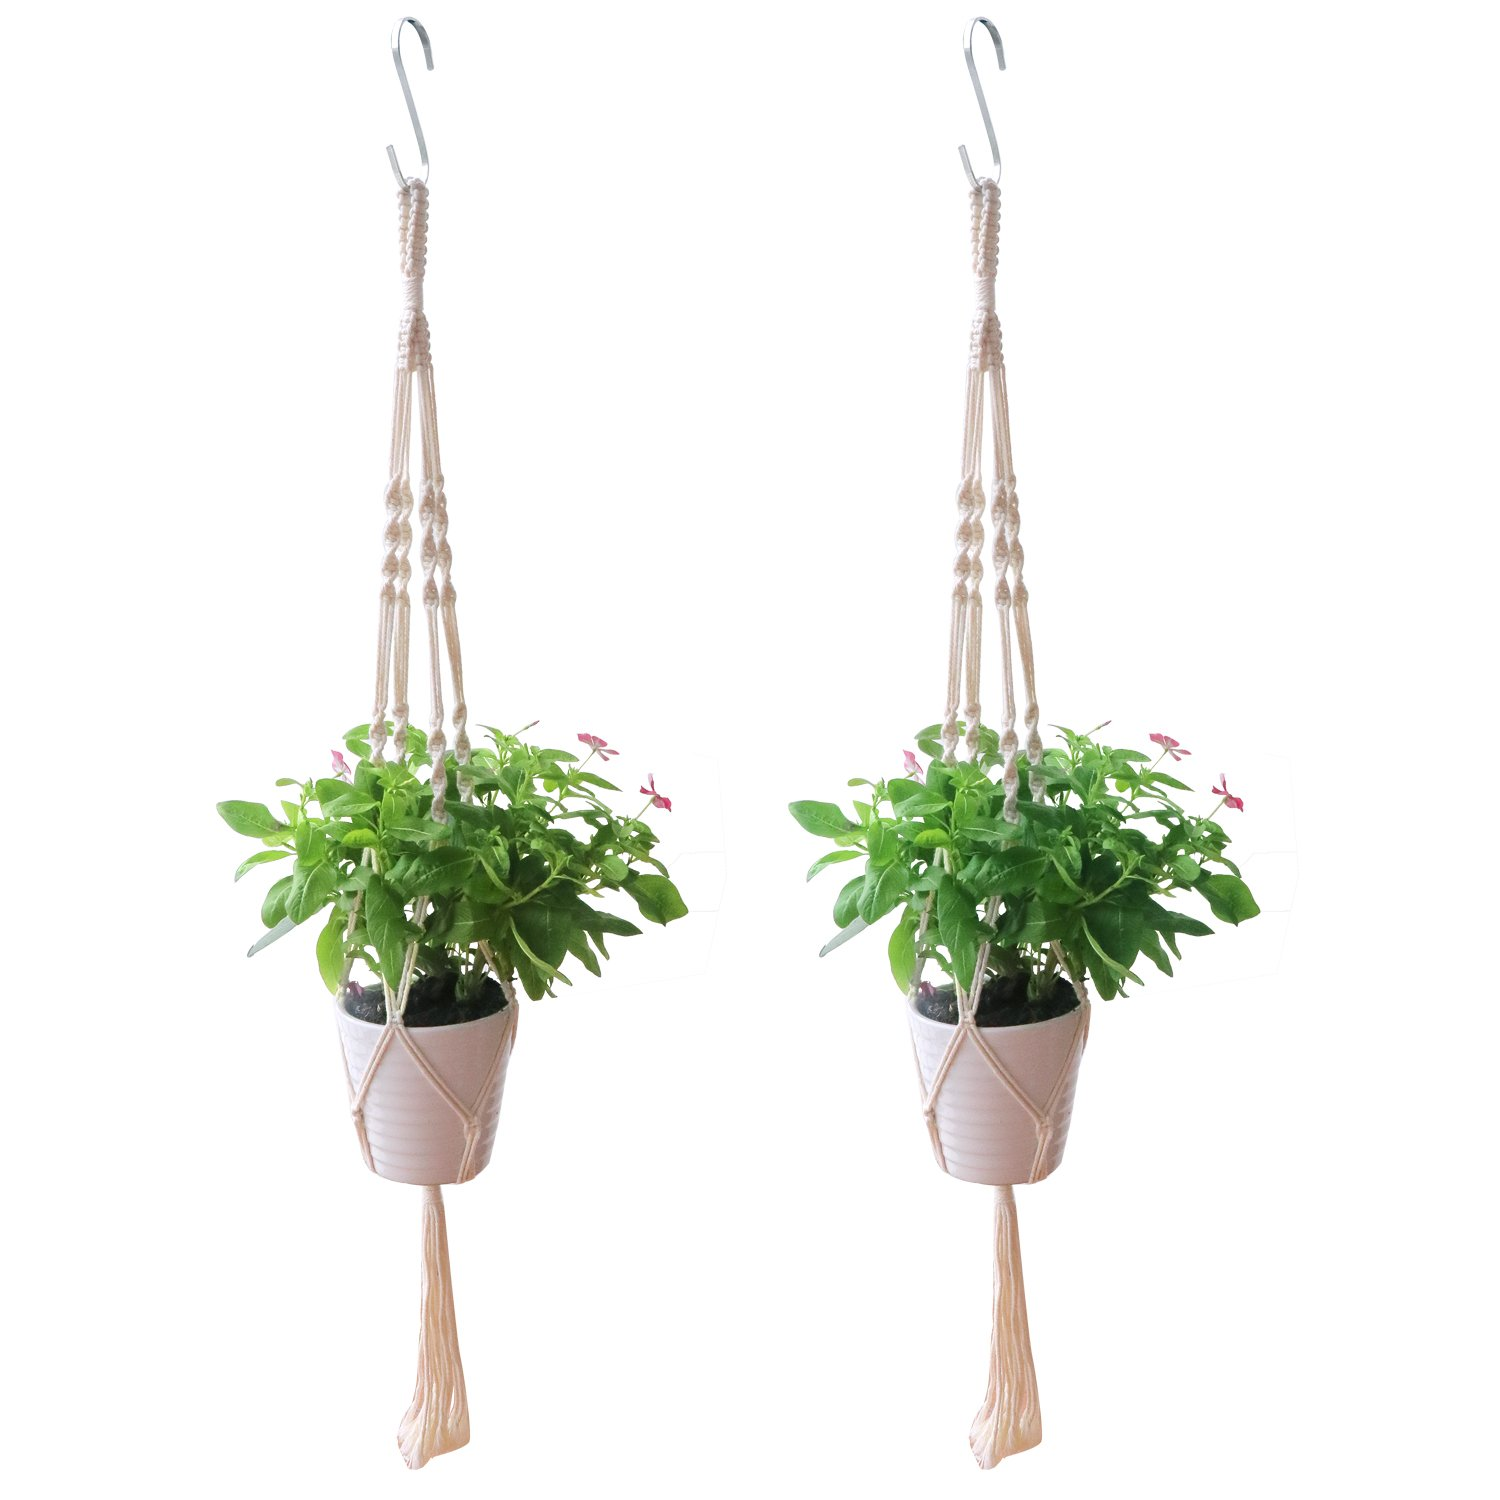 Dreecy 2 Pack Macrame Plant Hanger Cotton Rope with Stainless Steel S Hanging Hooks - 39 inches Indoor Outdoor Ceiling Flower Pot Plant Holder,4 Legs